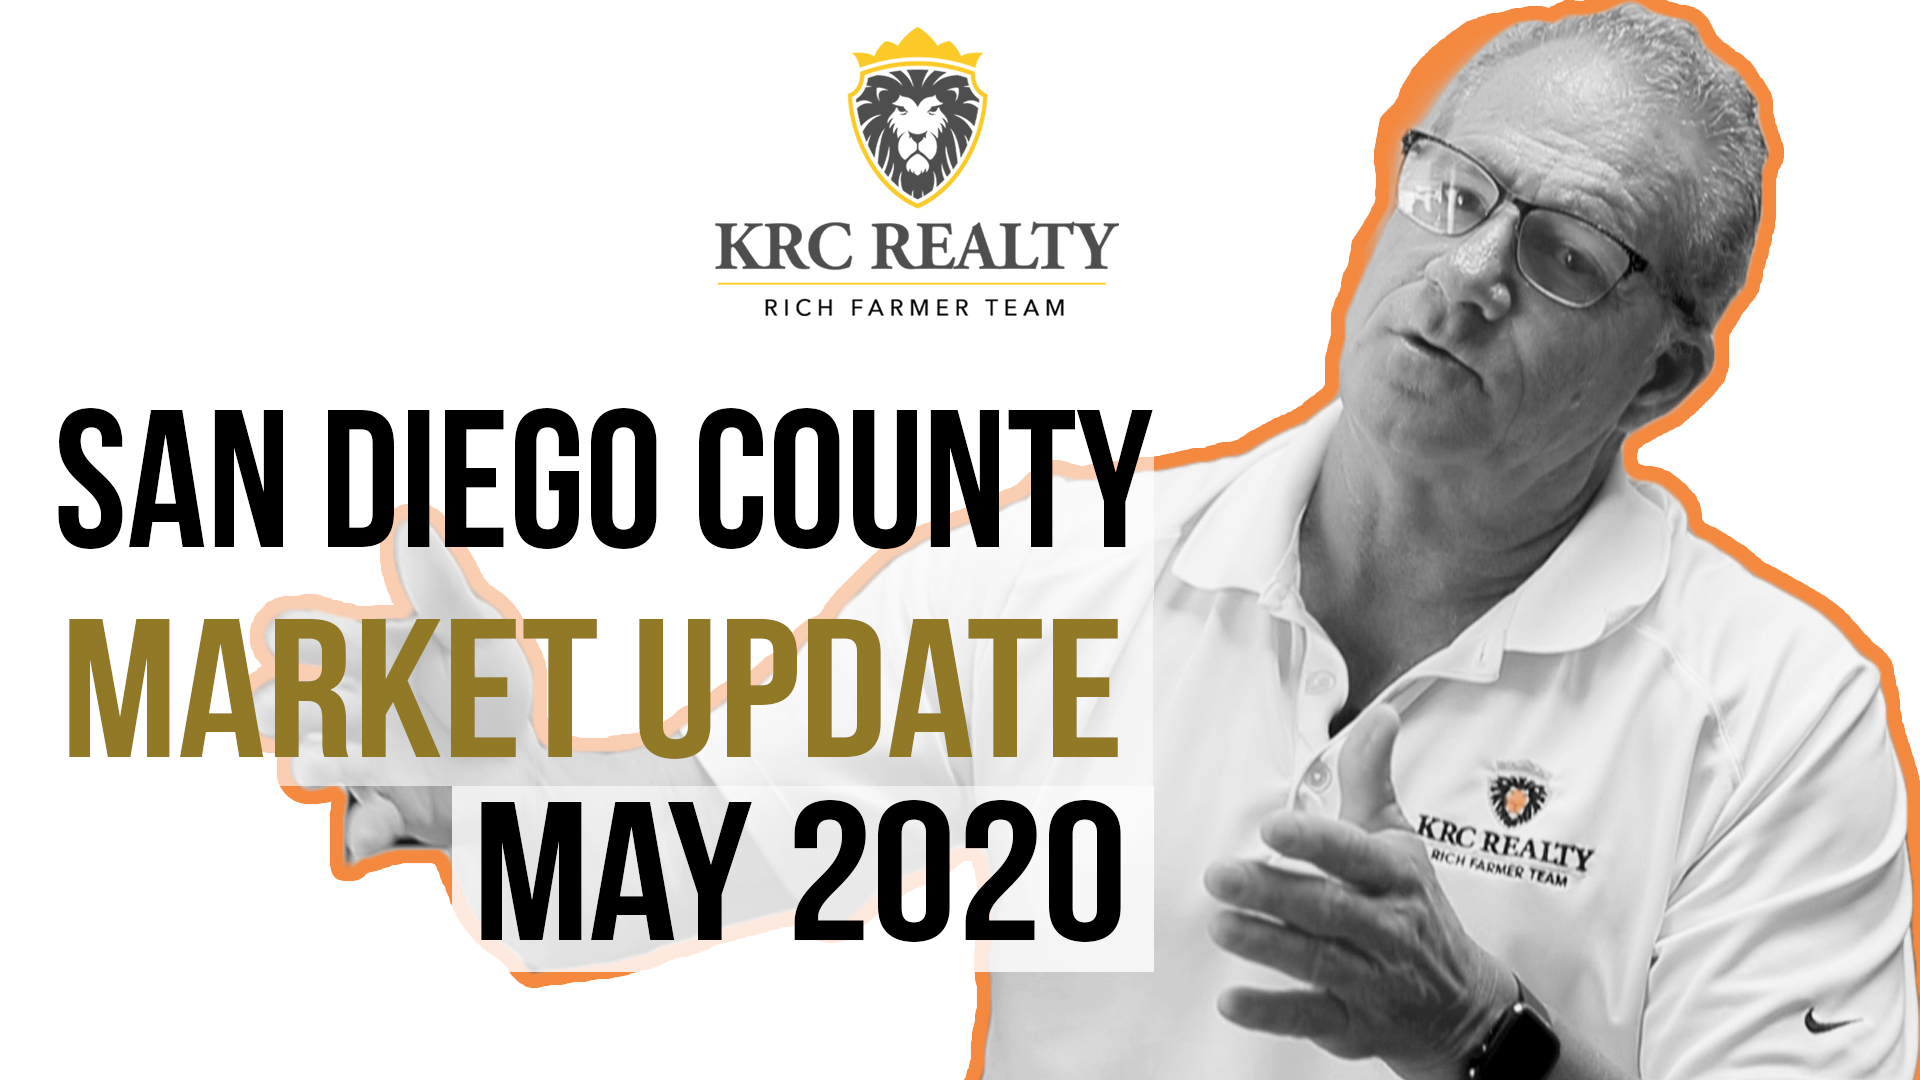 KRC REALTY | SAN DIEGO COUNTY MARKET UPDATE | MAY 2020 |